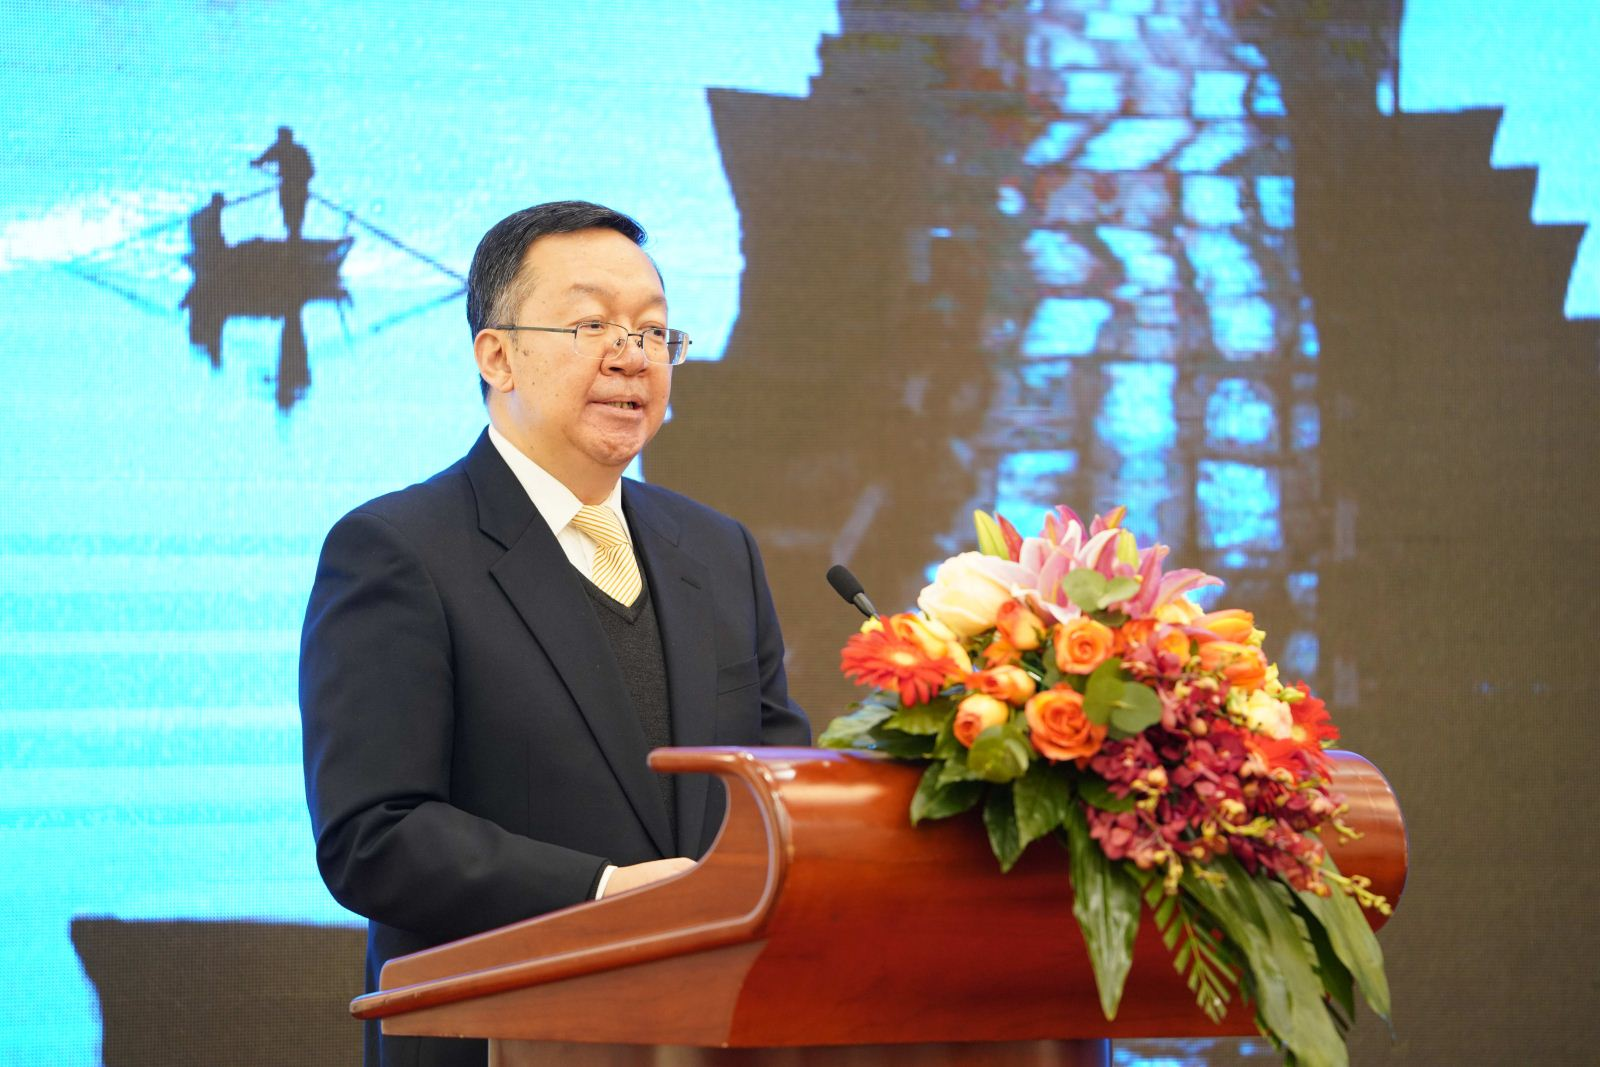 Tian Xuejun, Vice Minister of Education and FUSC President, gave a speech in the press conference